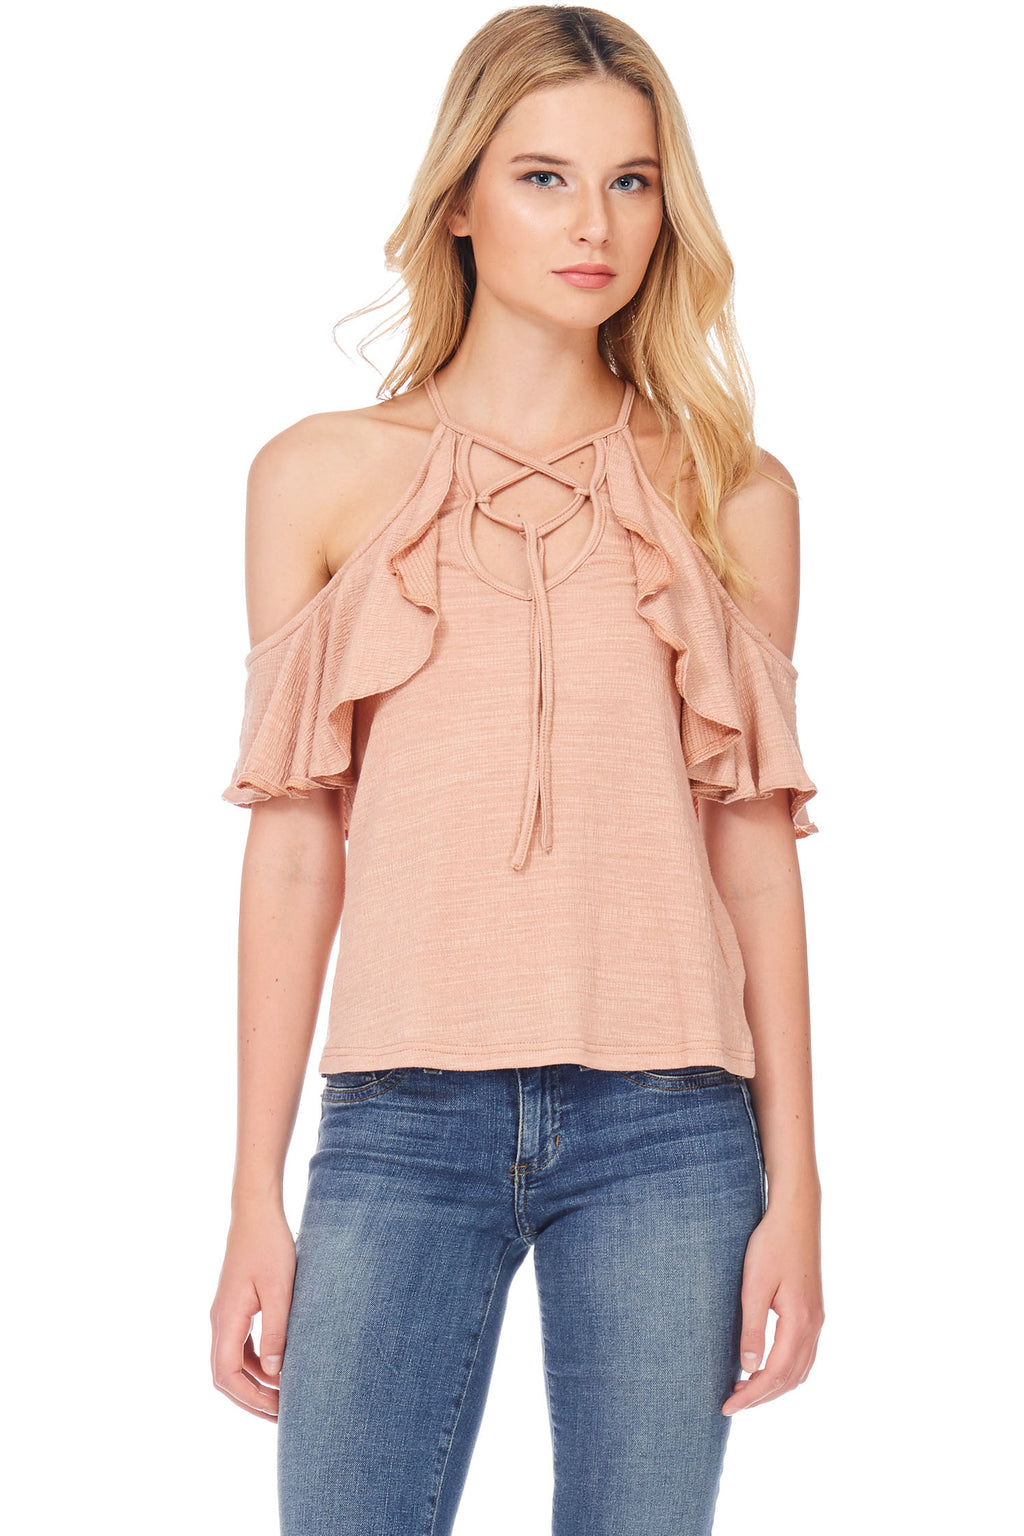 S18-066 Cold Shoulder Ruffle Top